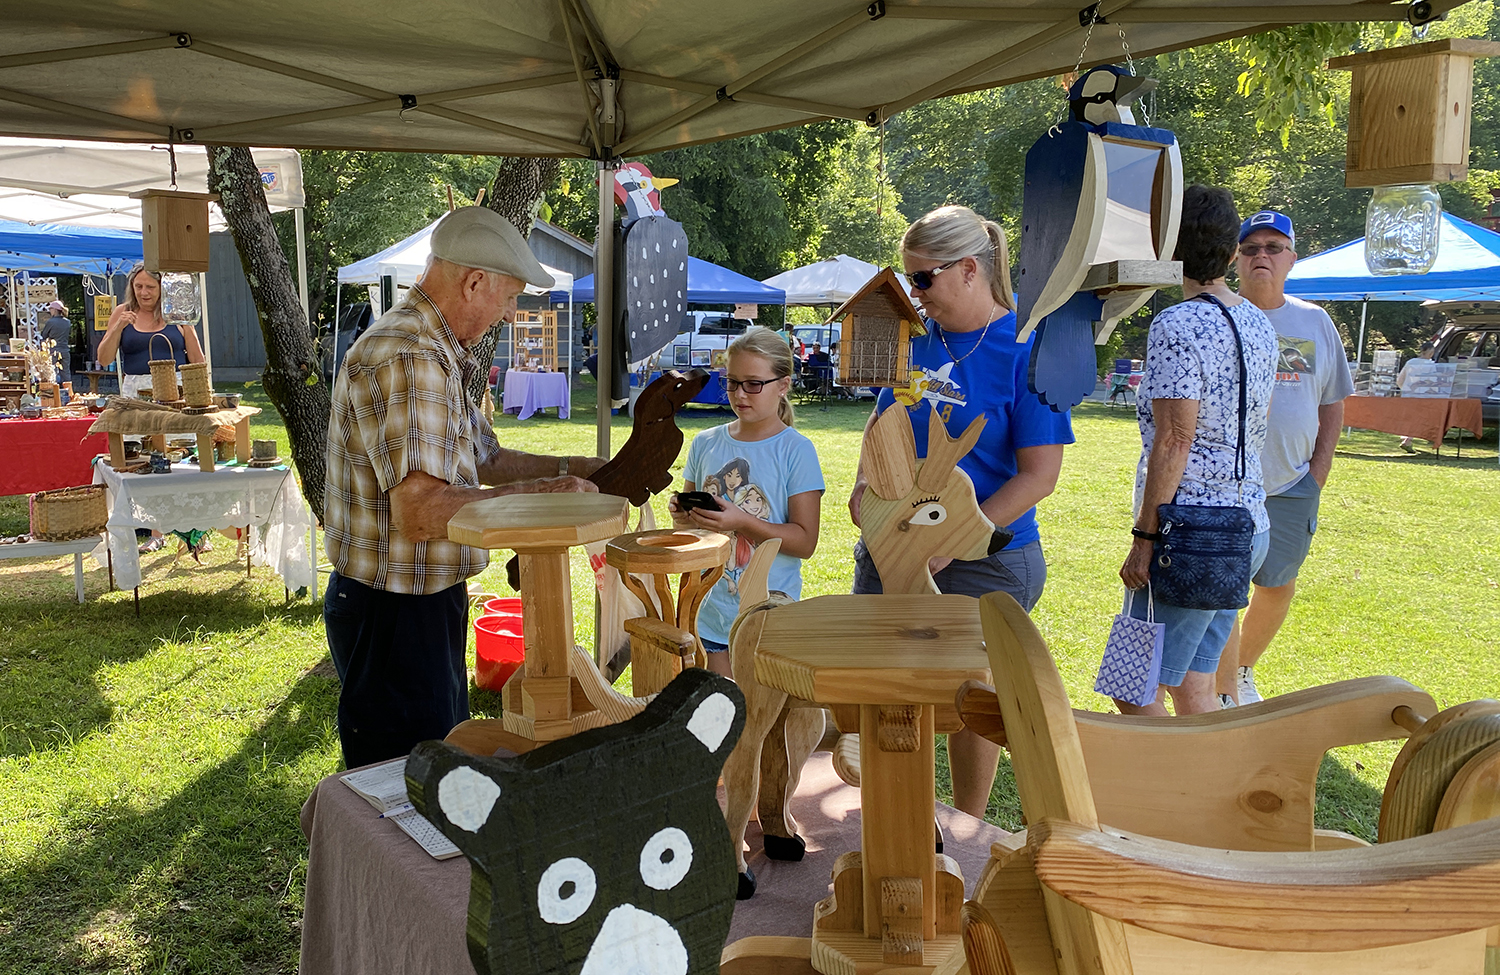 handmade toys and furniture